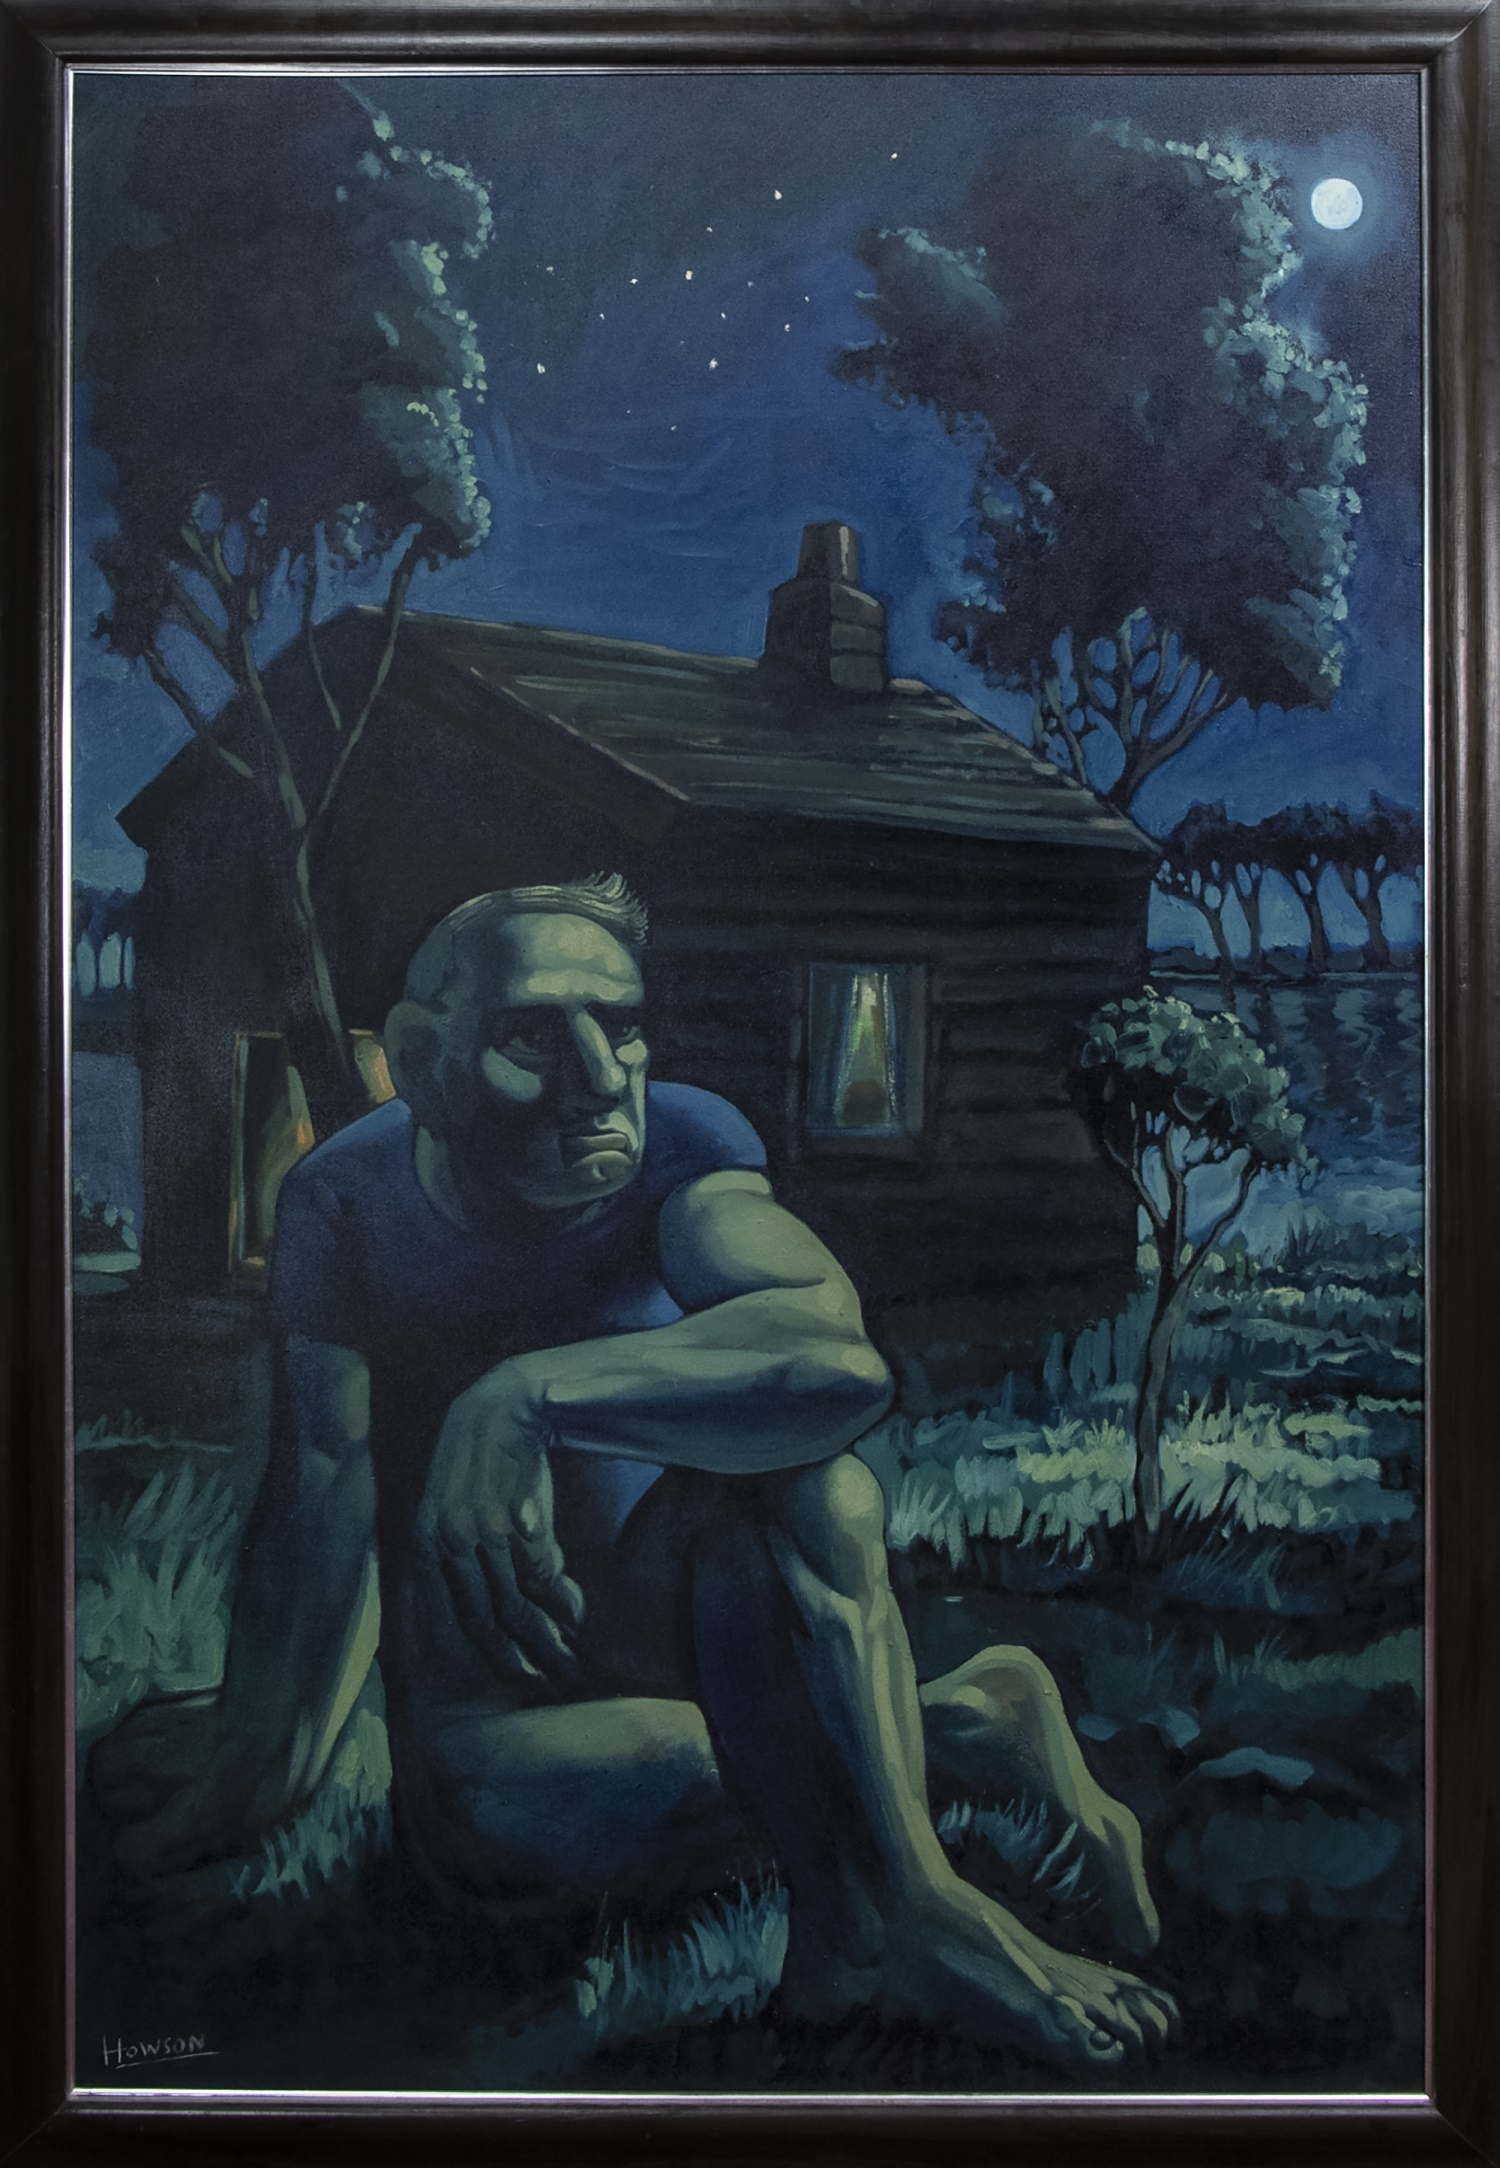 THE NIGHT CABIN, A LARGE OIL BY PETER HOWSON